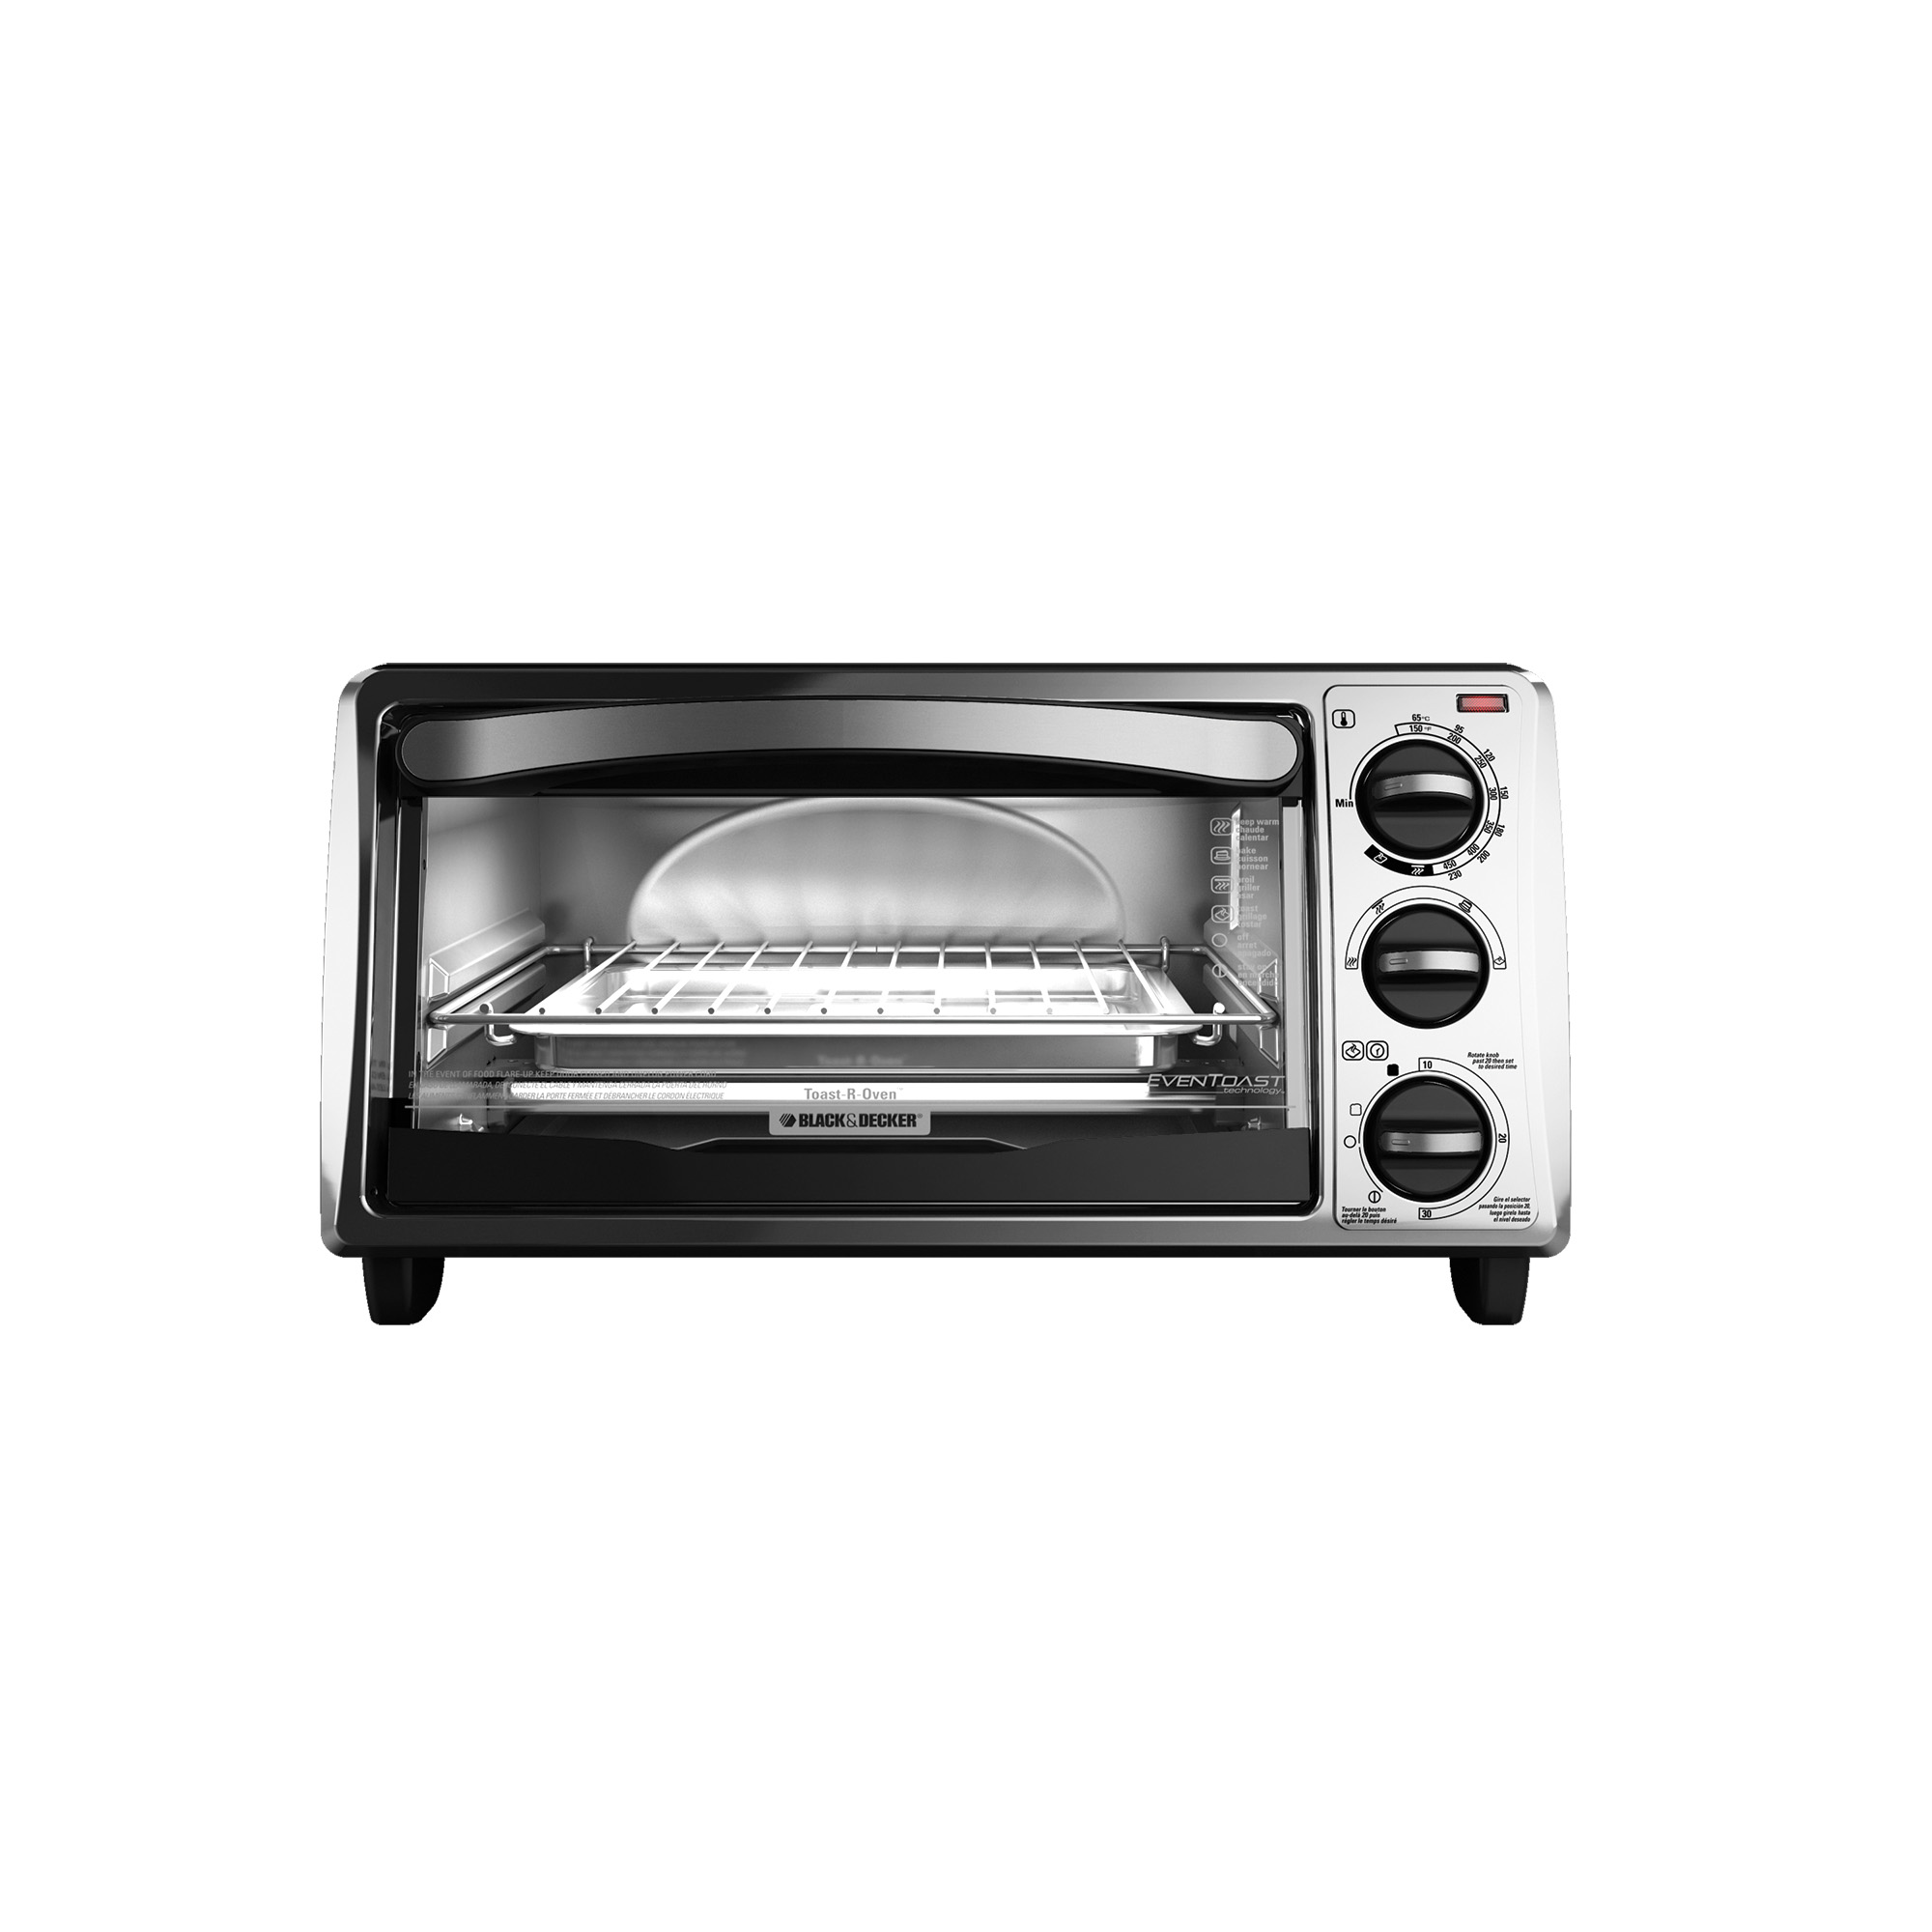 black and decker digital advantage toaster oven manual